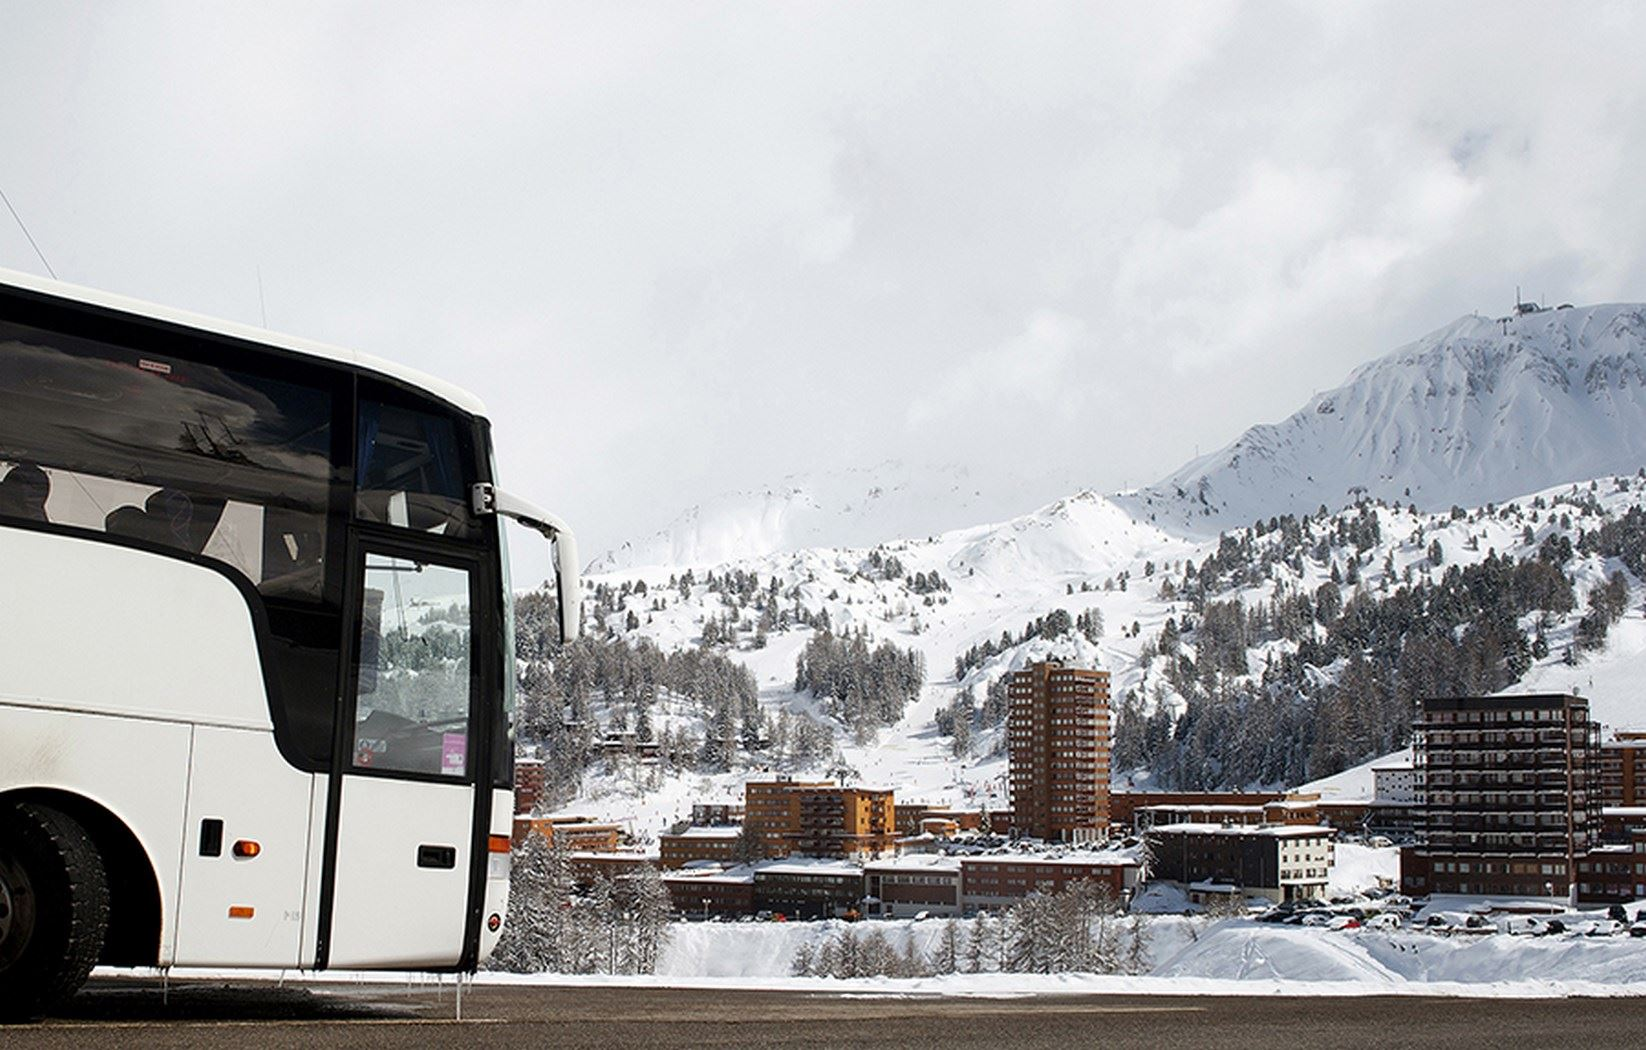 ALTIBUS Geneva Airport --> Val Thorens Place des Arolles - FROM 35,25€ PER TICKET